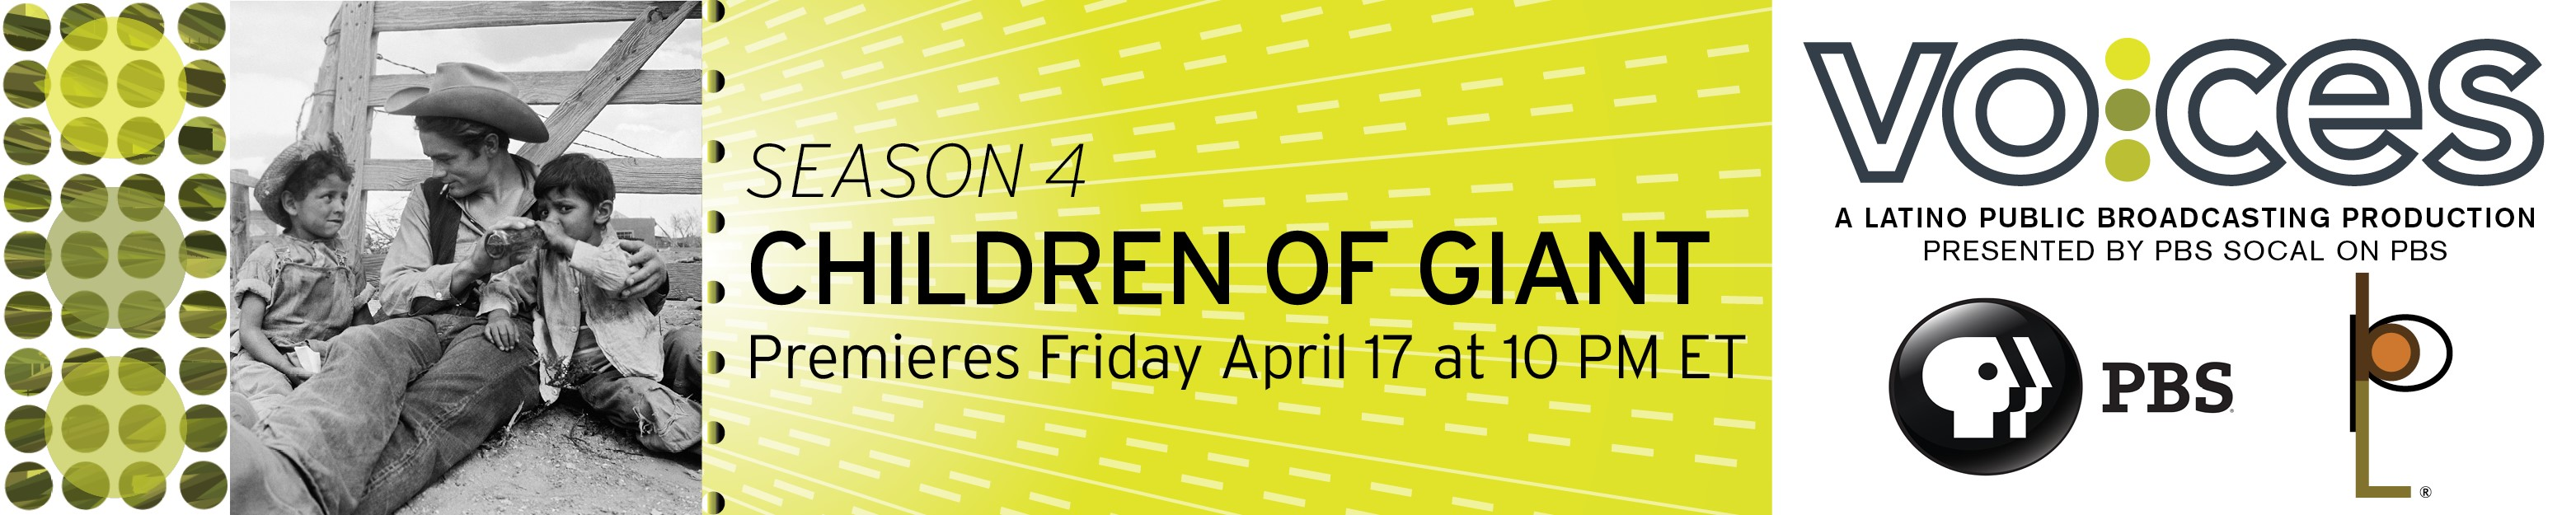 Children_of_Giant_banner.jpg